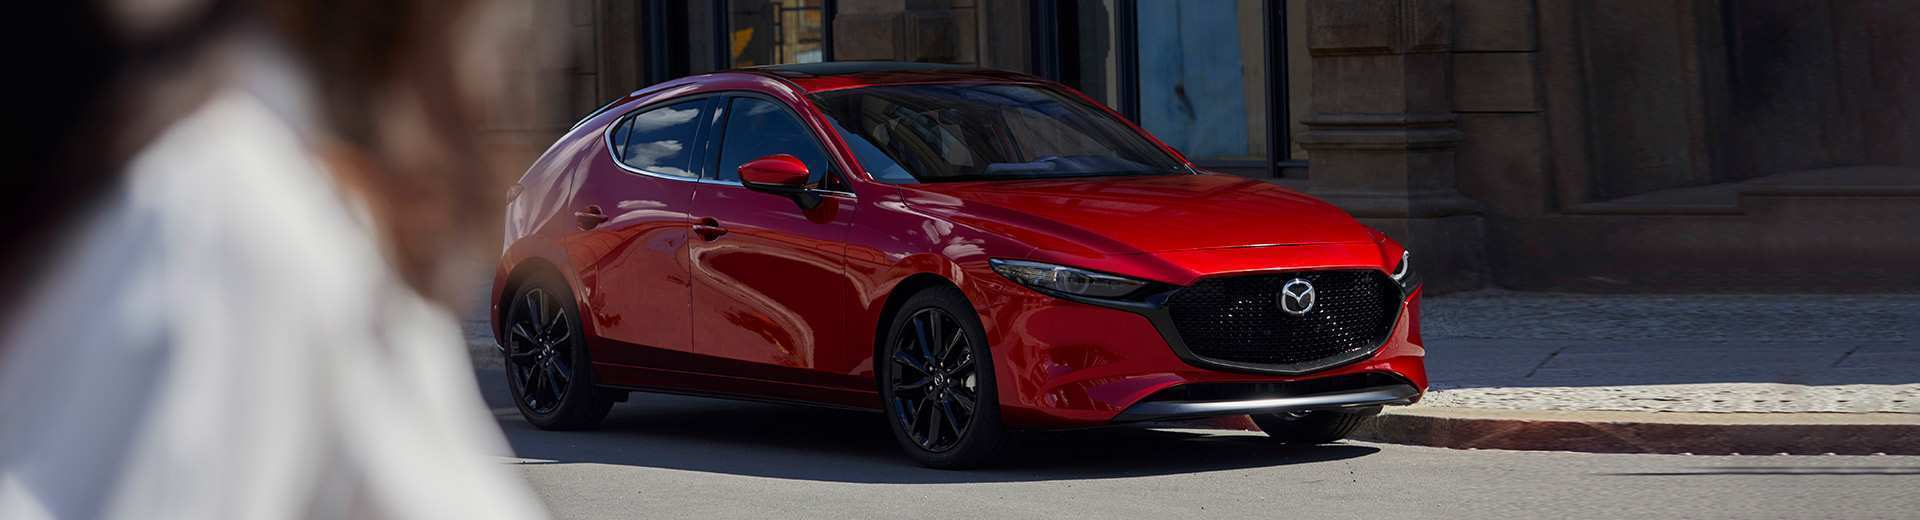 34 Best Mazda 3 2019 Gt New Review